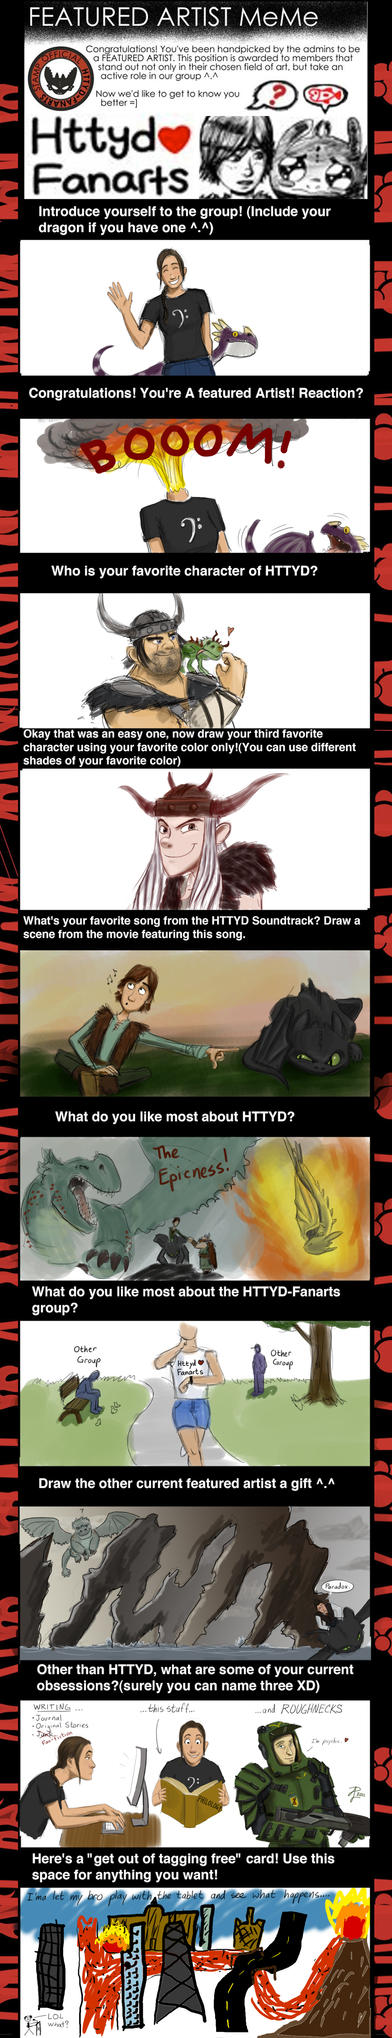 HTTYD-Fanarts Feature Meme by Contraltissimo